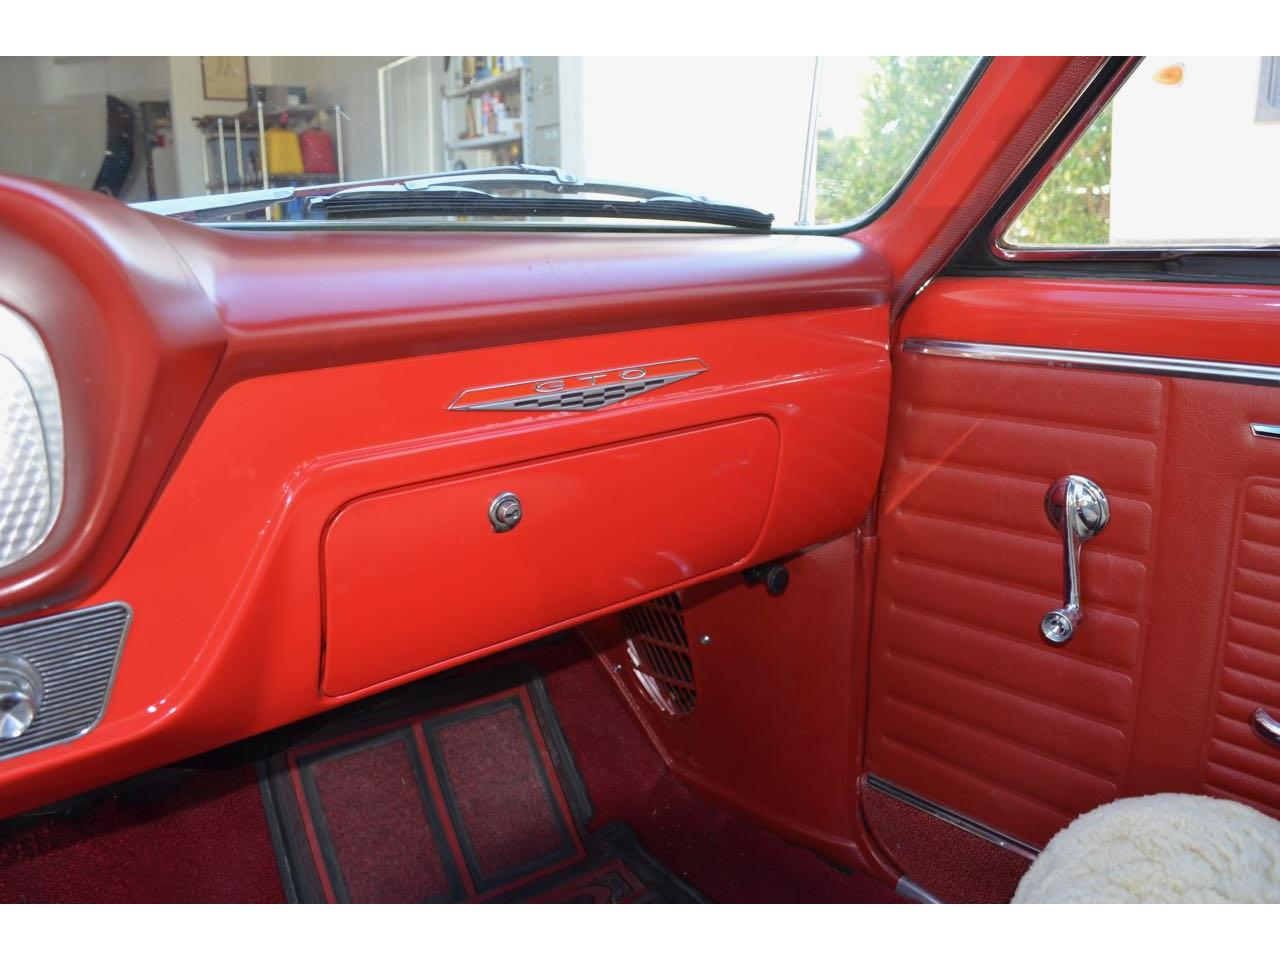 Large Picture of Classic '64 LeMans located in California - $49,500.00 Offered by Spoke Motors - KK9E